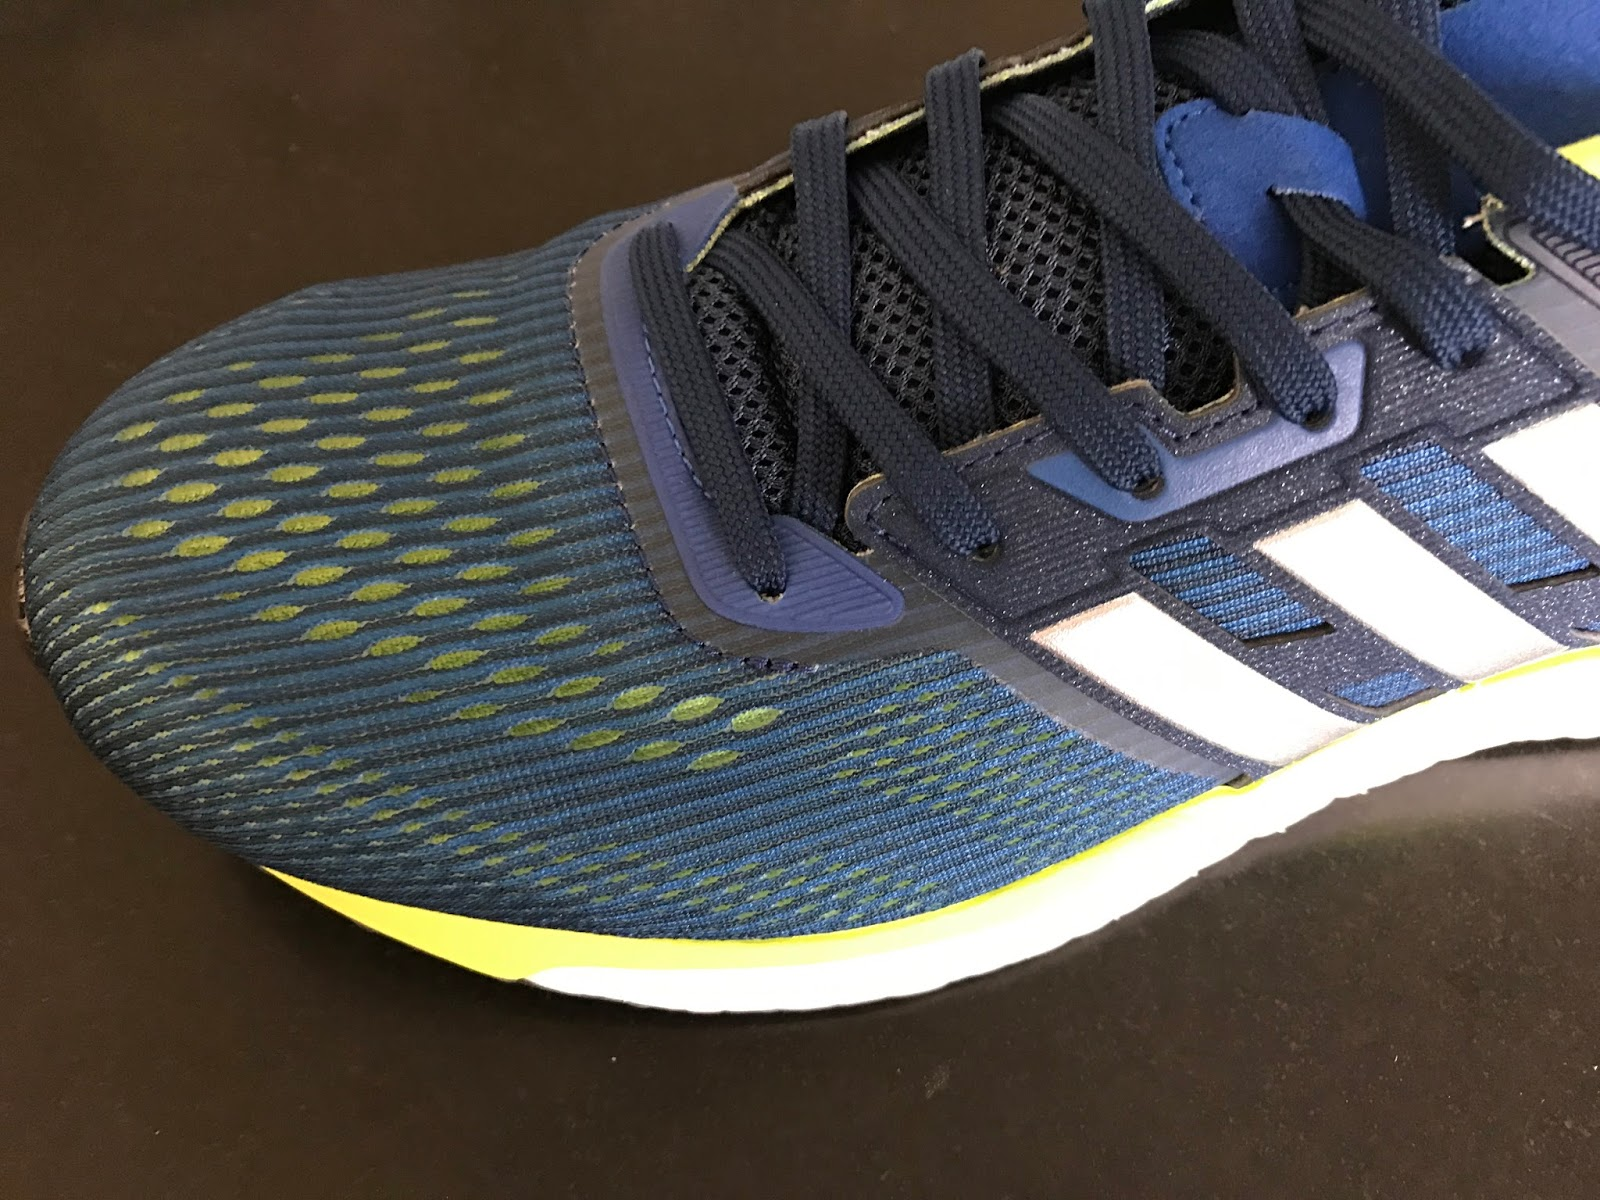 Road Trail Run Adidas Supernova Glide 9 Review